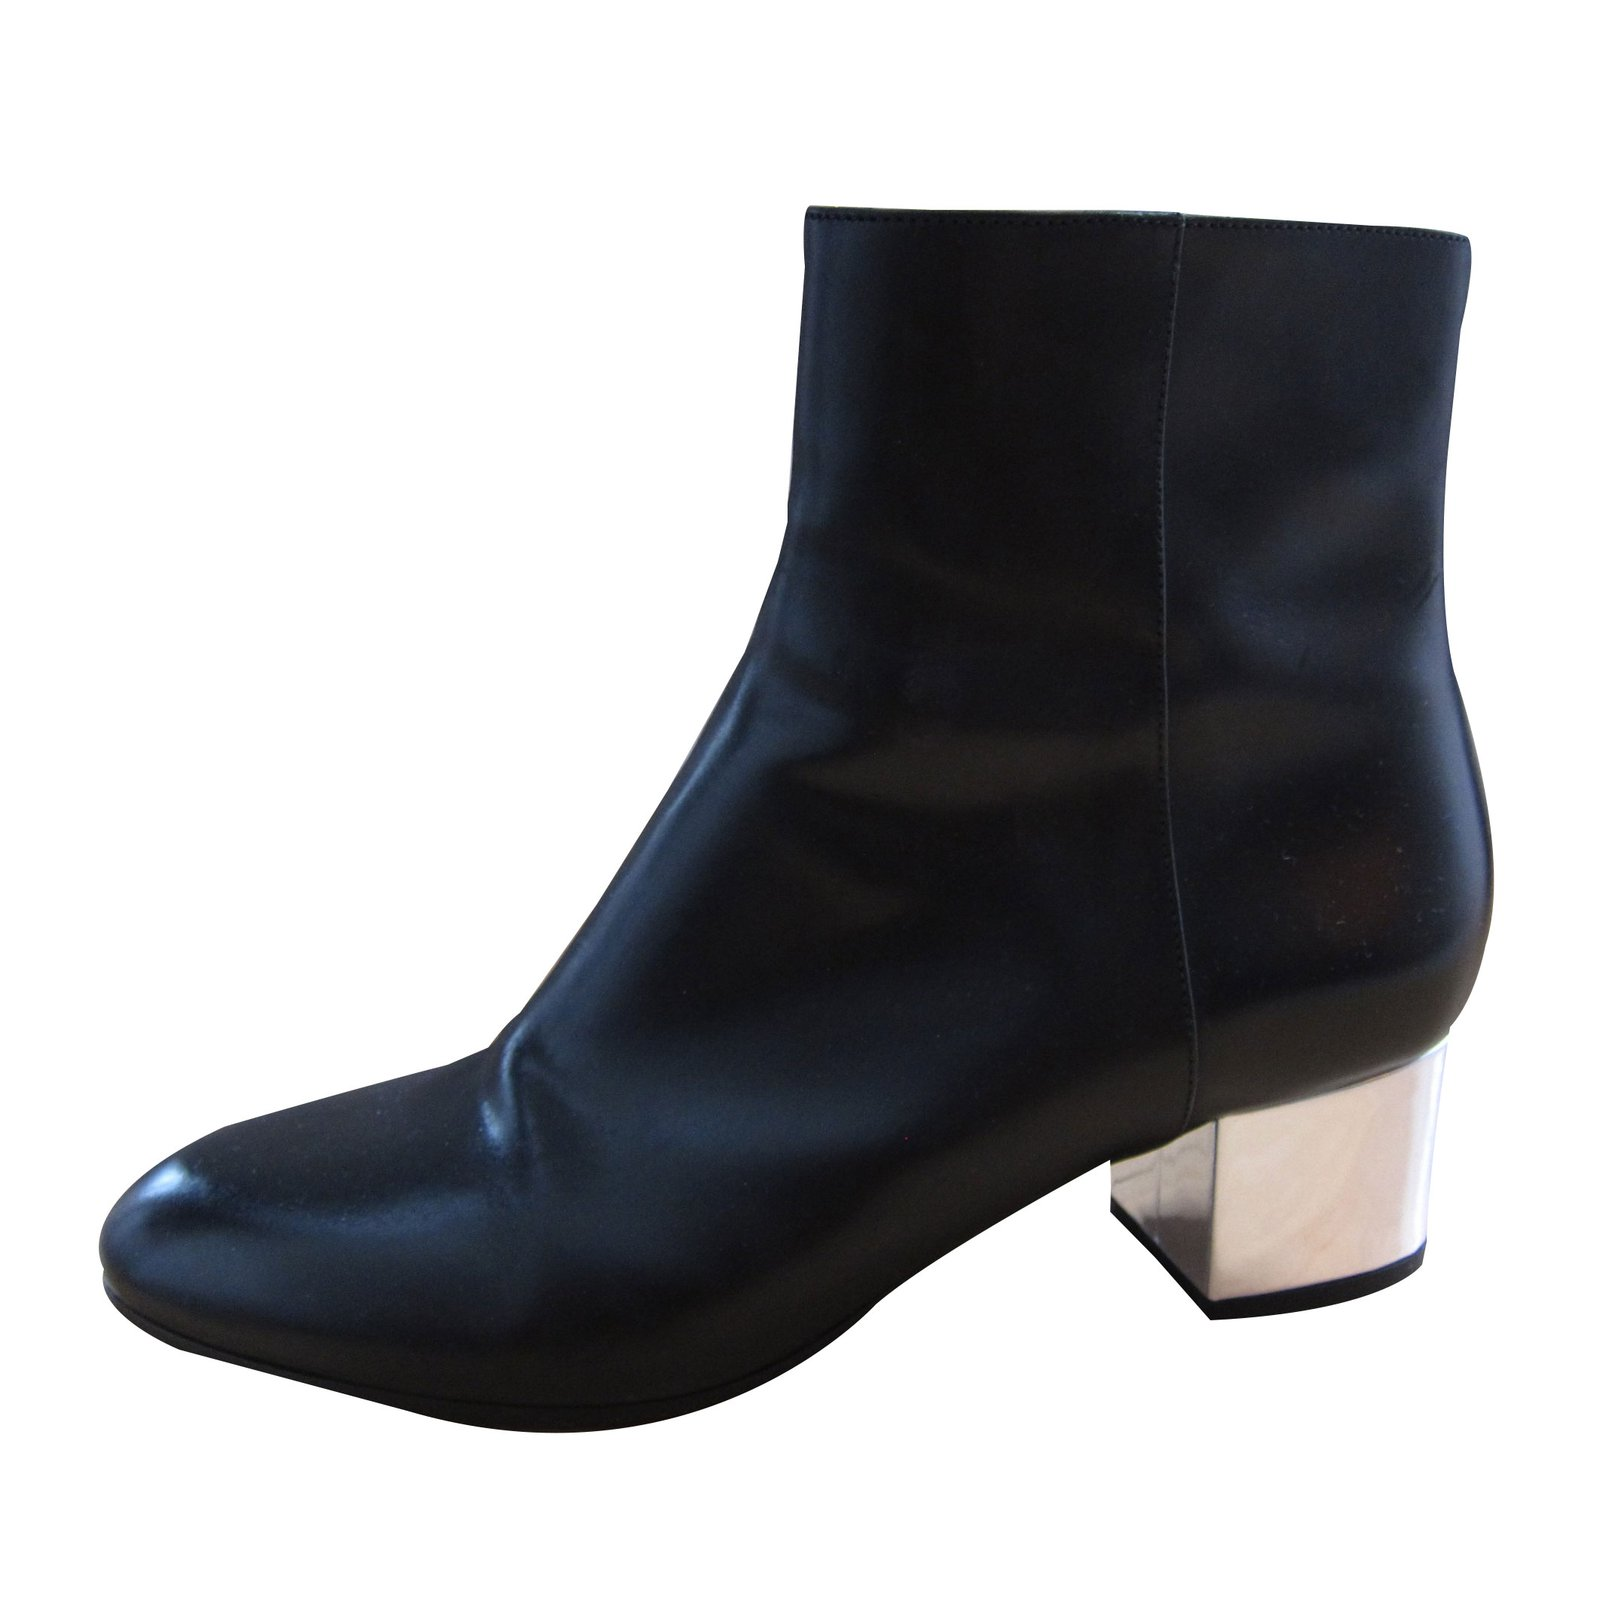 49b02cba1e Dries Van Noten Ankle Boots Ankle Boots Leather Black ref.35108 ...